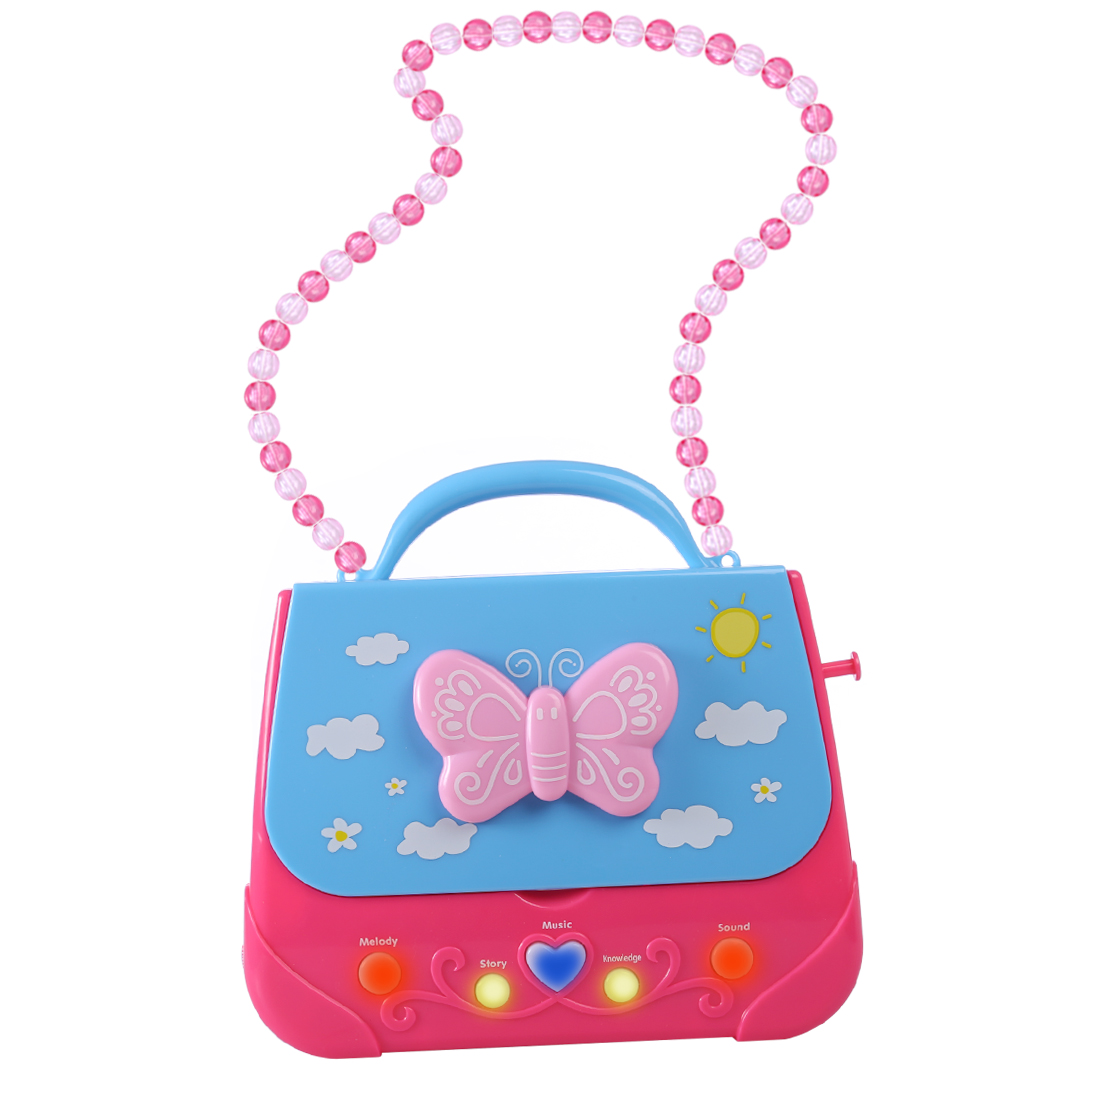 Karaoke Christmas Musical.Us 16 21 41 Off Children Portable Musical Bag Karaoke Machine Toys With Microphone Karaoke Player Learning Toy For Girl Christmas Gifts In Toy